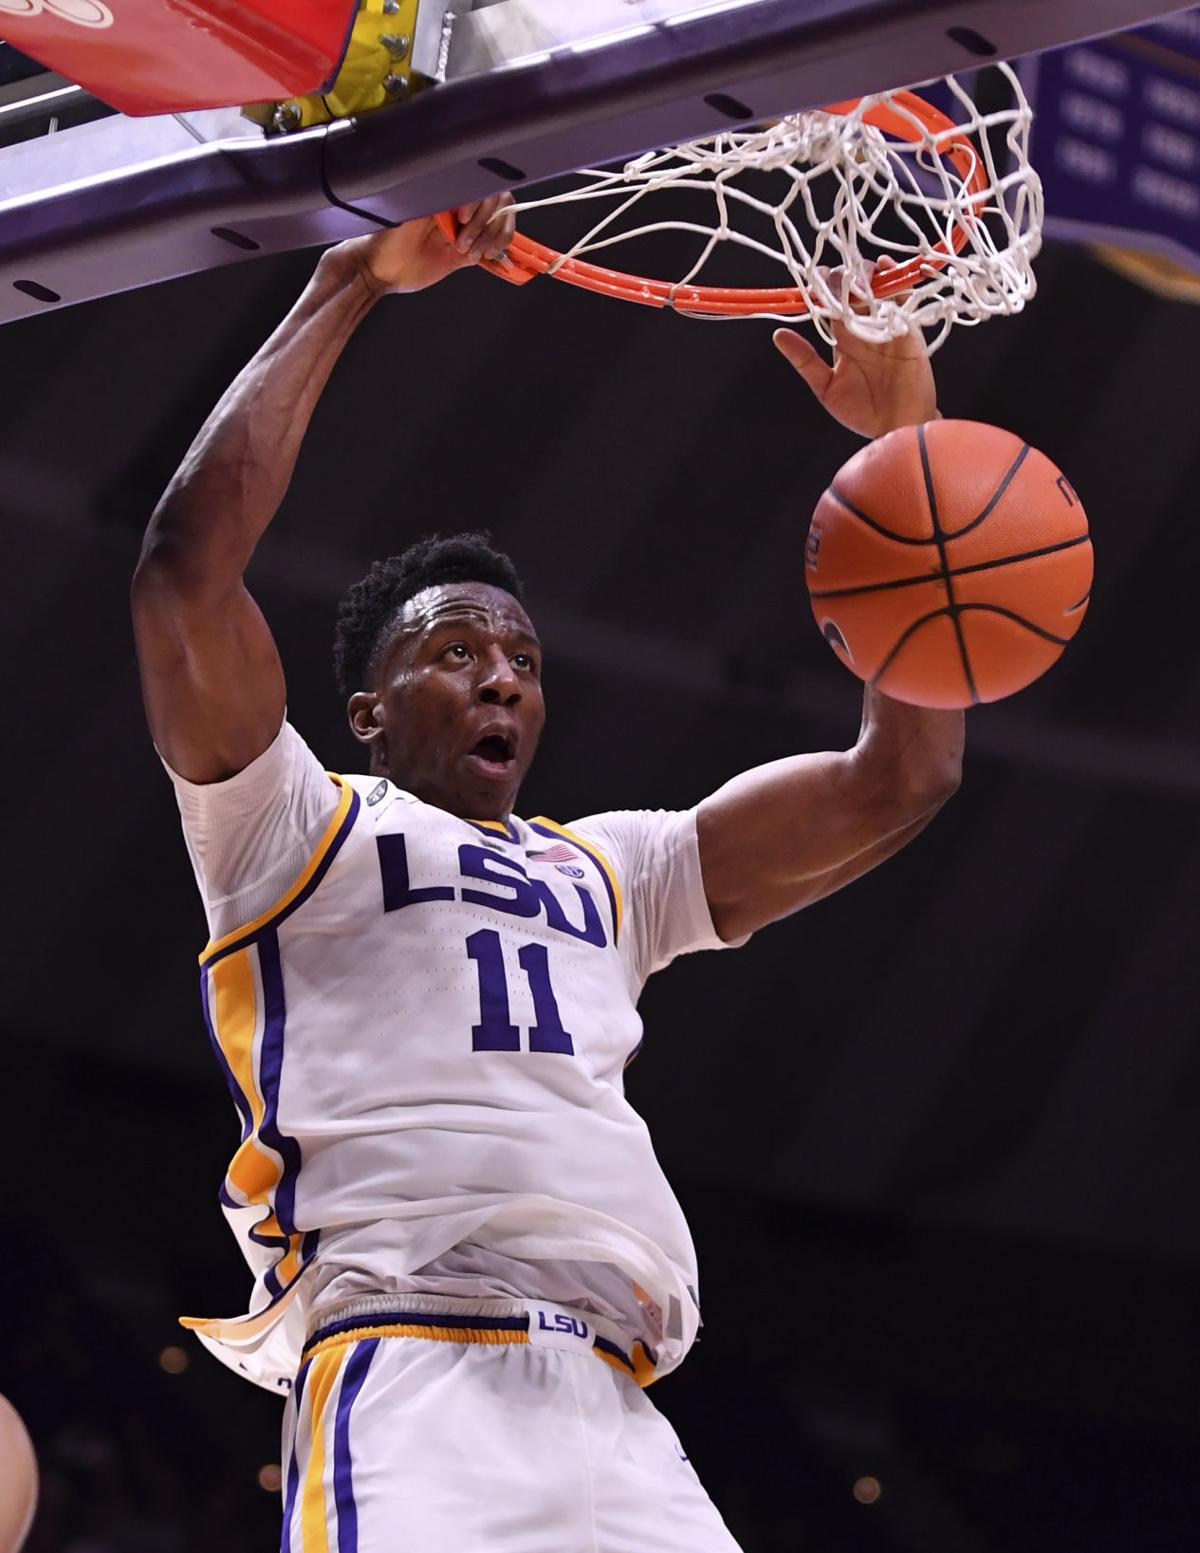 lsualabamabasketball.010919_HS_1527